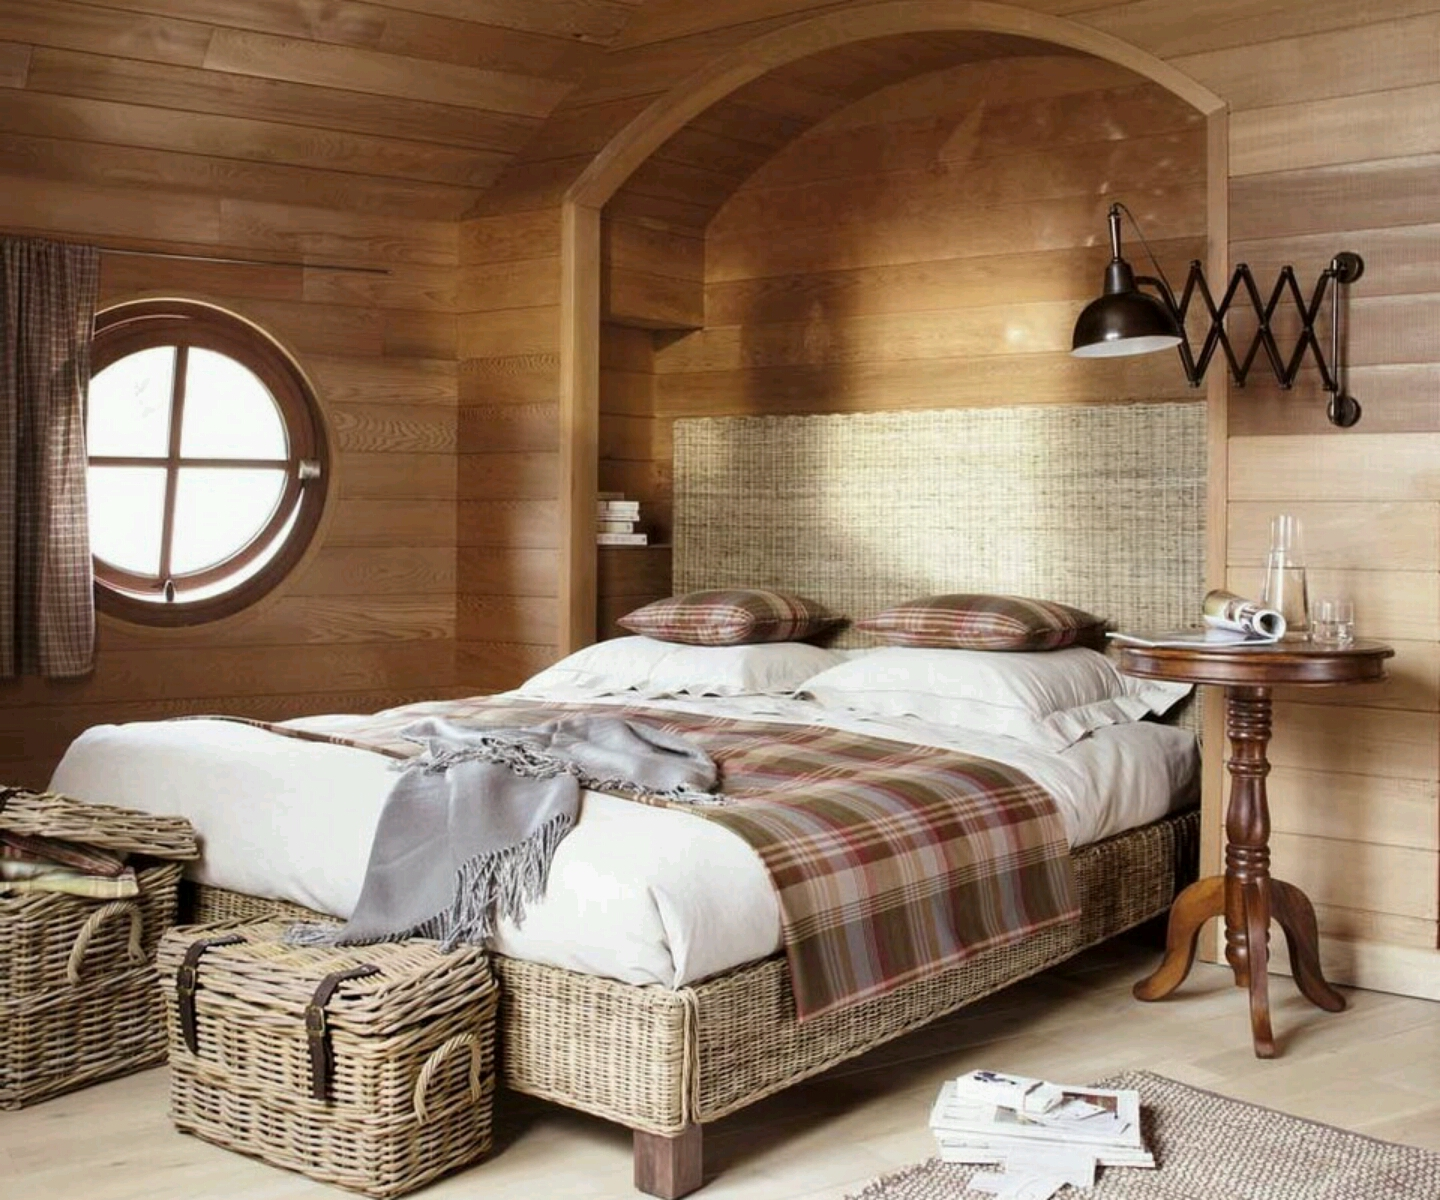 Beautiful bedroom interior designs photos for Beautiful bed designs